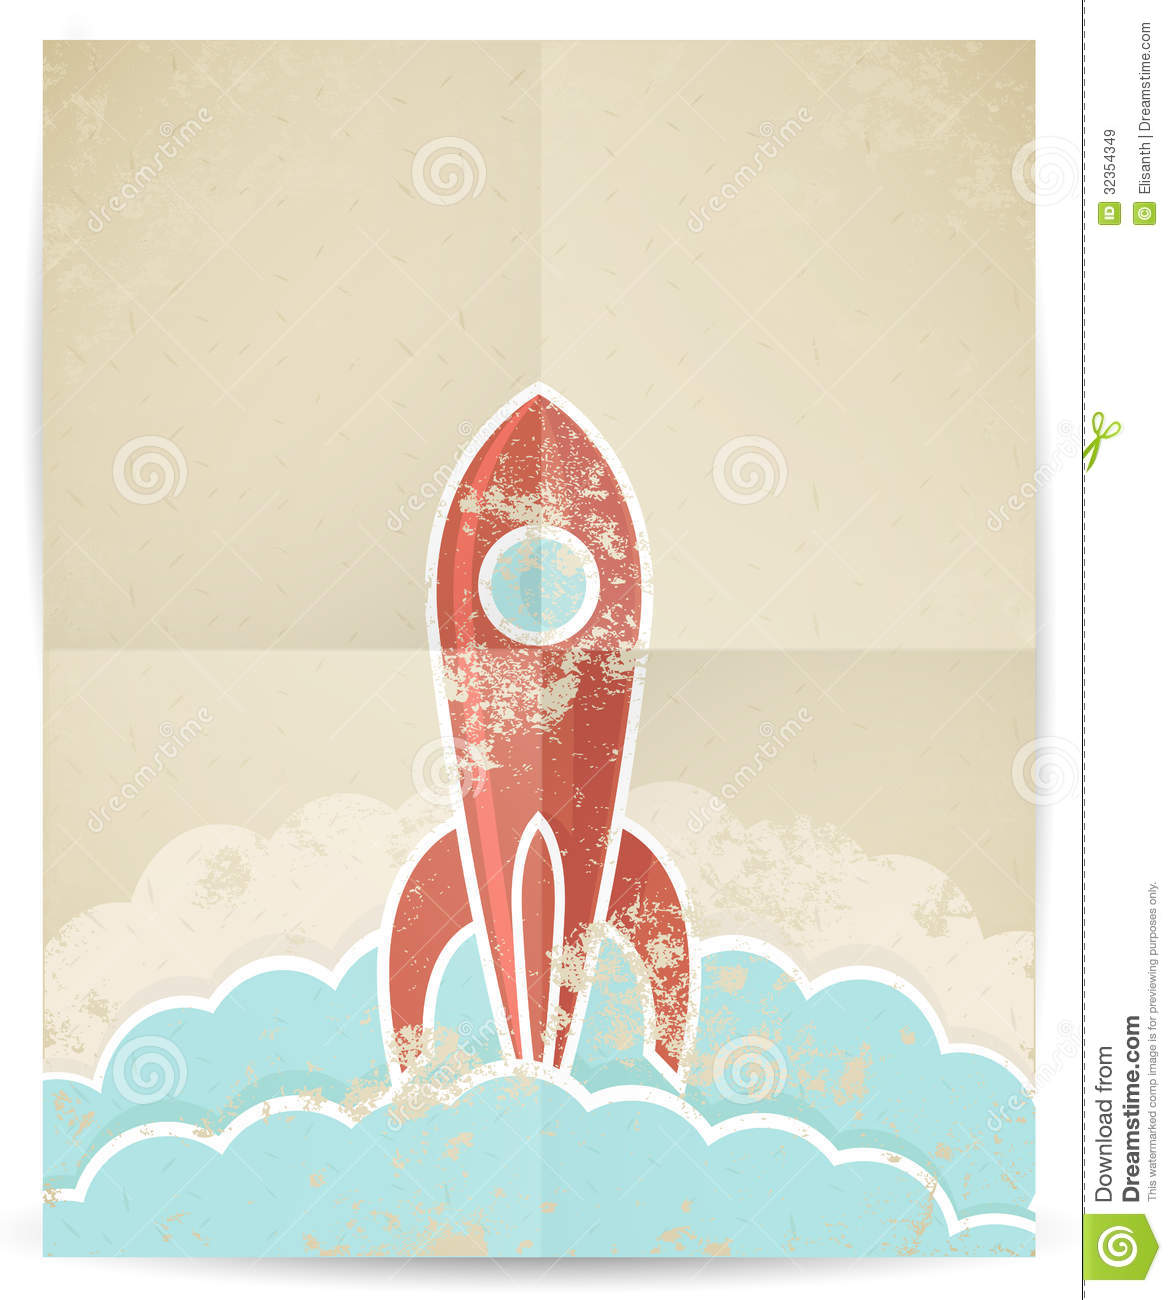 Vector Retro Rocket With Grunge Texture Royalty Free Stock ...